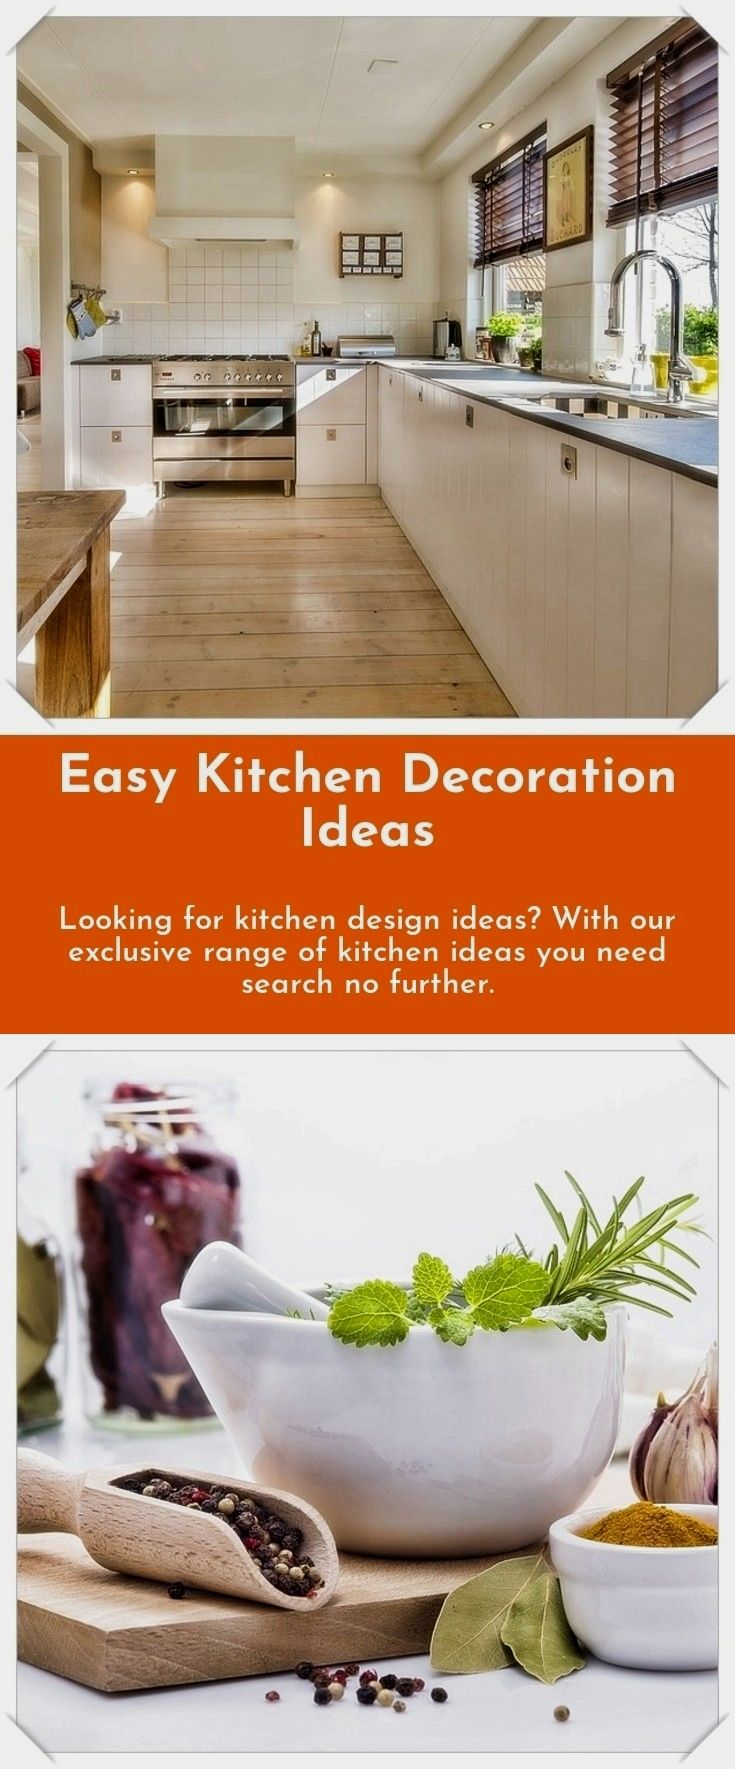 Redesigning A Kitchen Aristokraft Cabinets Great Design And Decoration Tips Are You Your Grant Room Refresh By Using These Redecorating